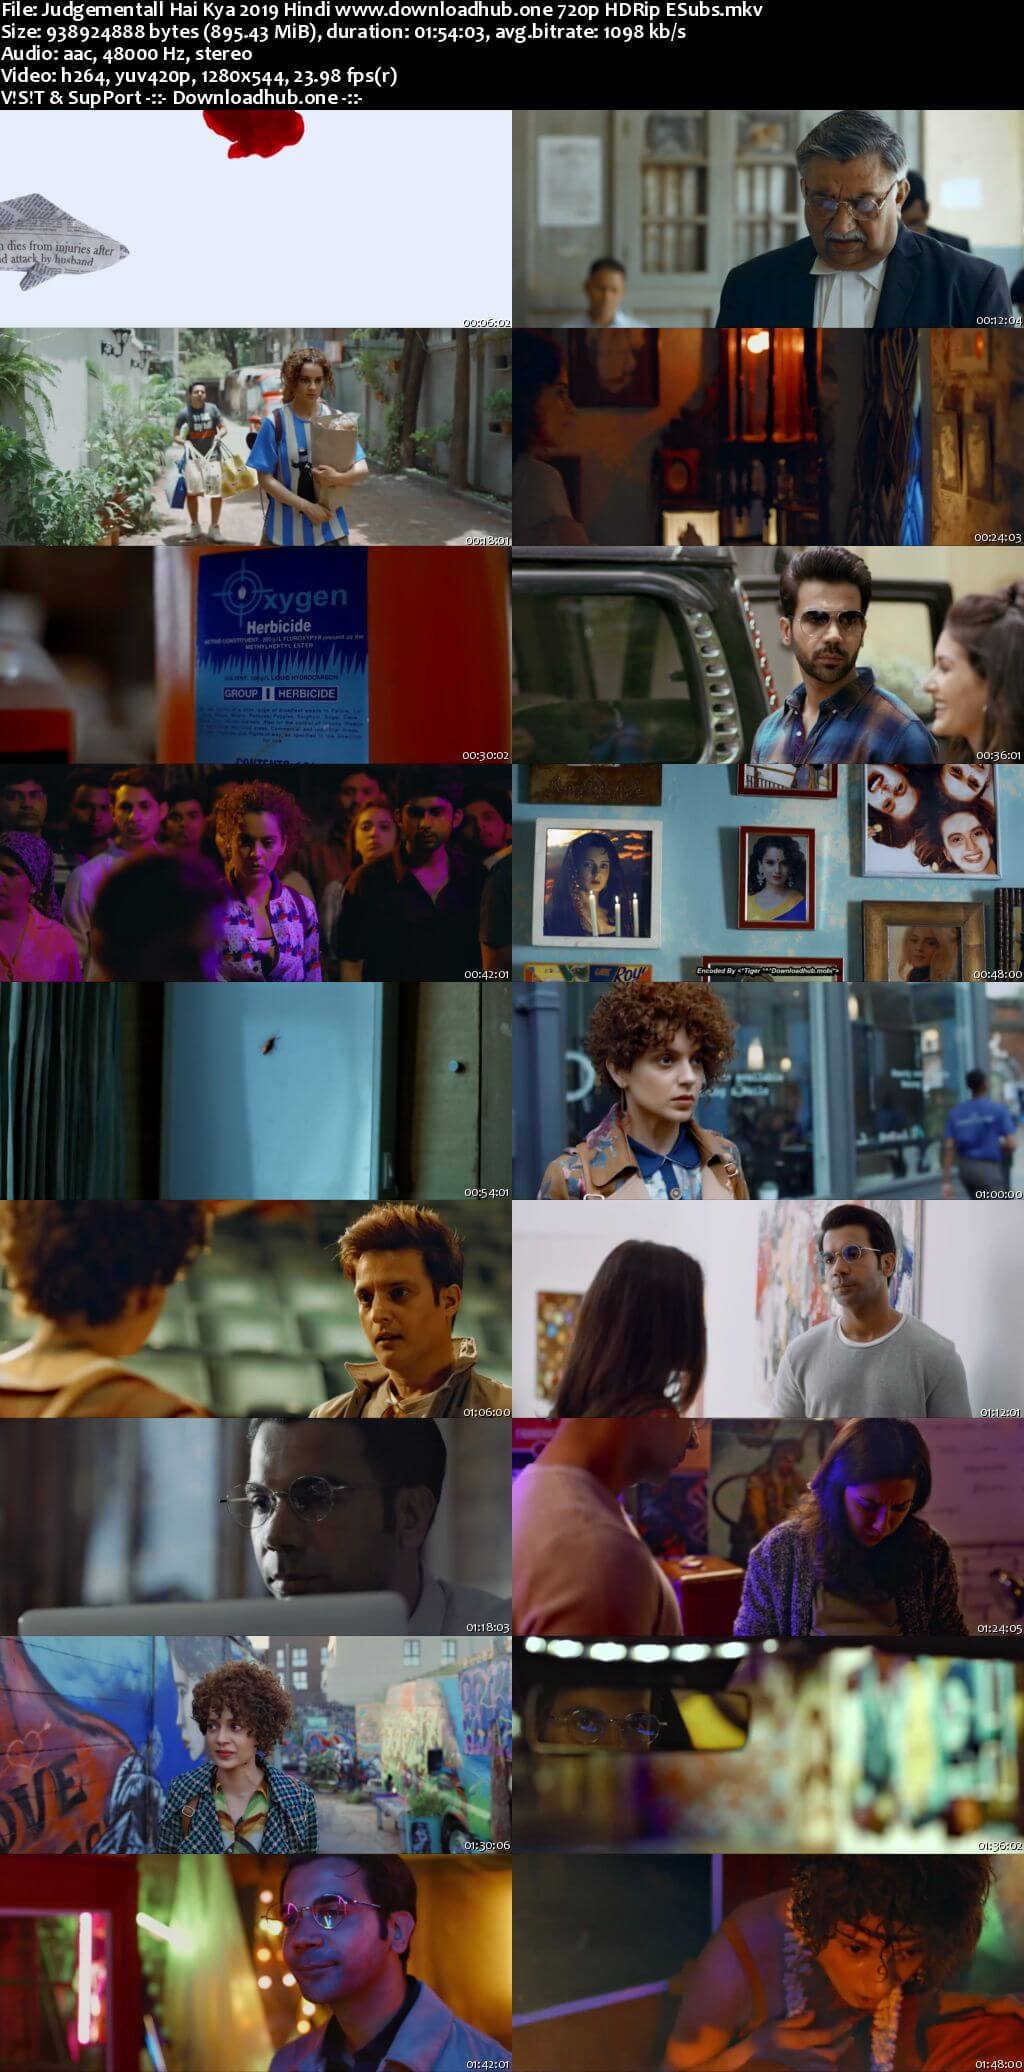 Judgementall Hai Kya 2019 Hindi 720p HDRip ESubs